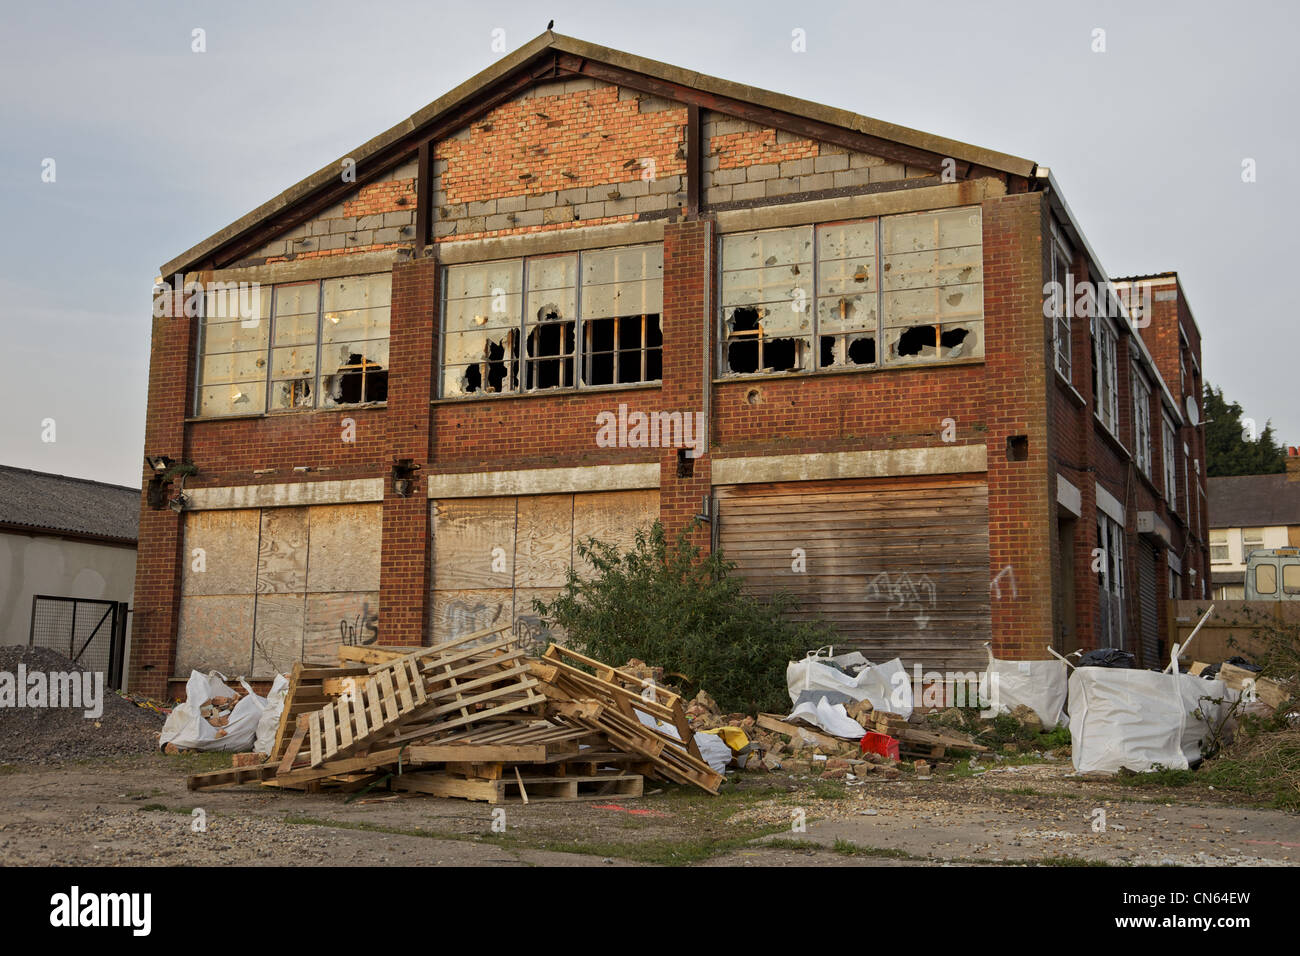 An old derelict factory and offices, England - Stock Image